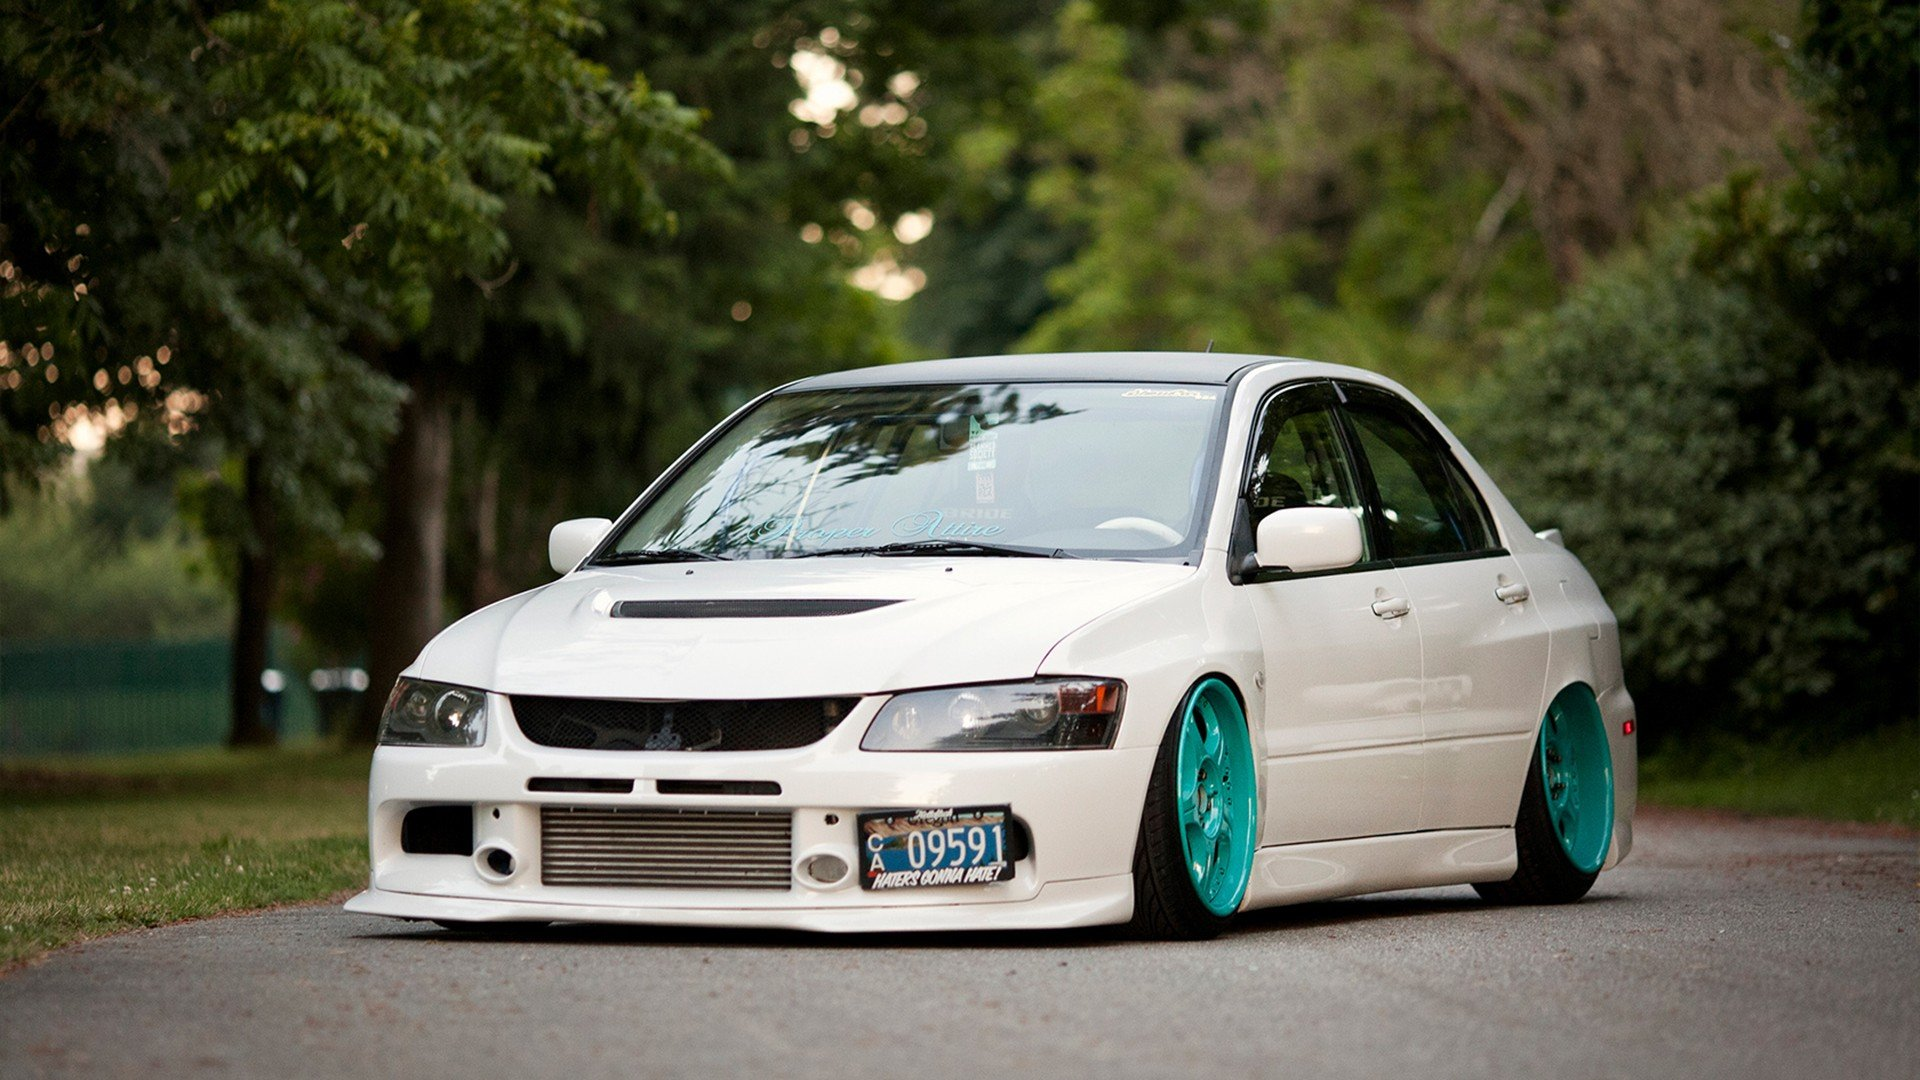 Wallpapers cars Slammed evo Mitsubishi Lancer Evolution IV 1920x1080